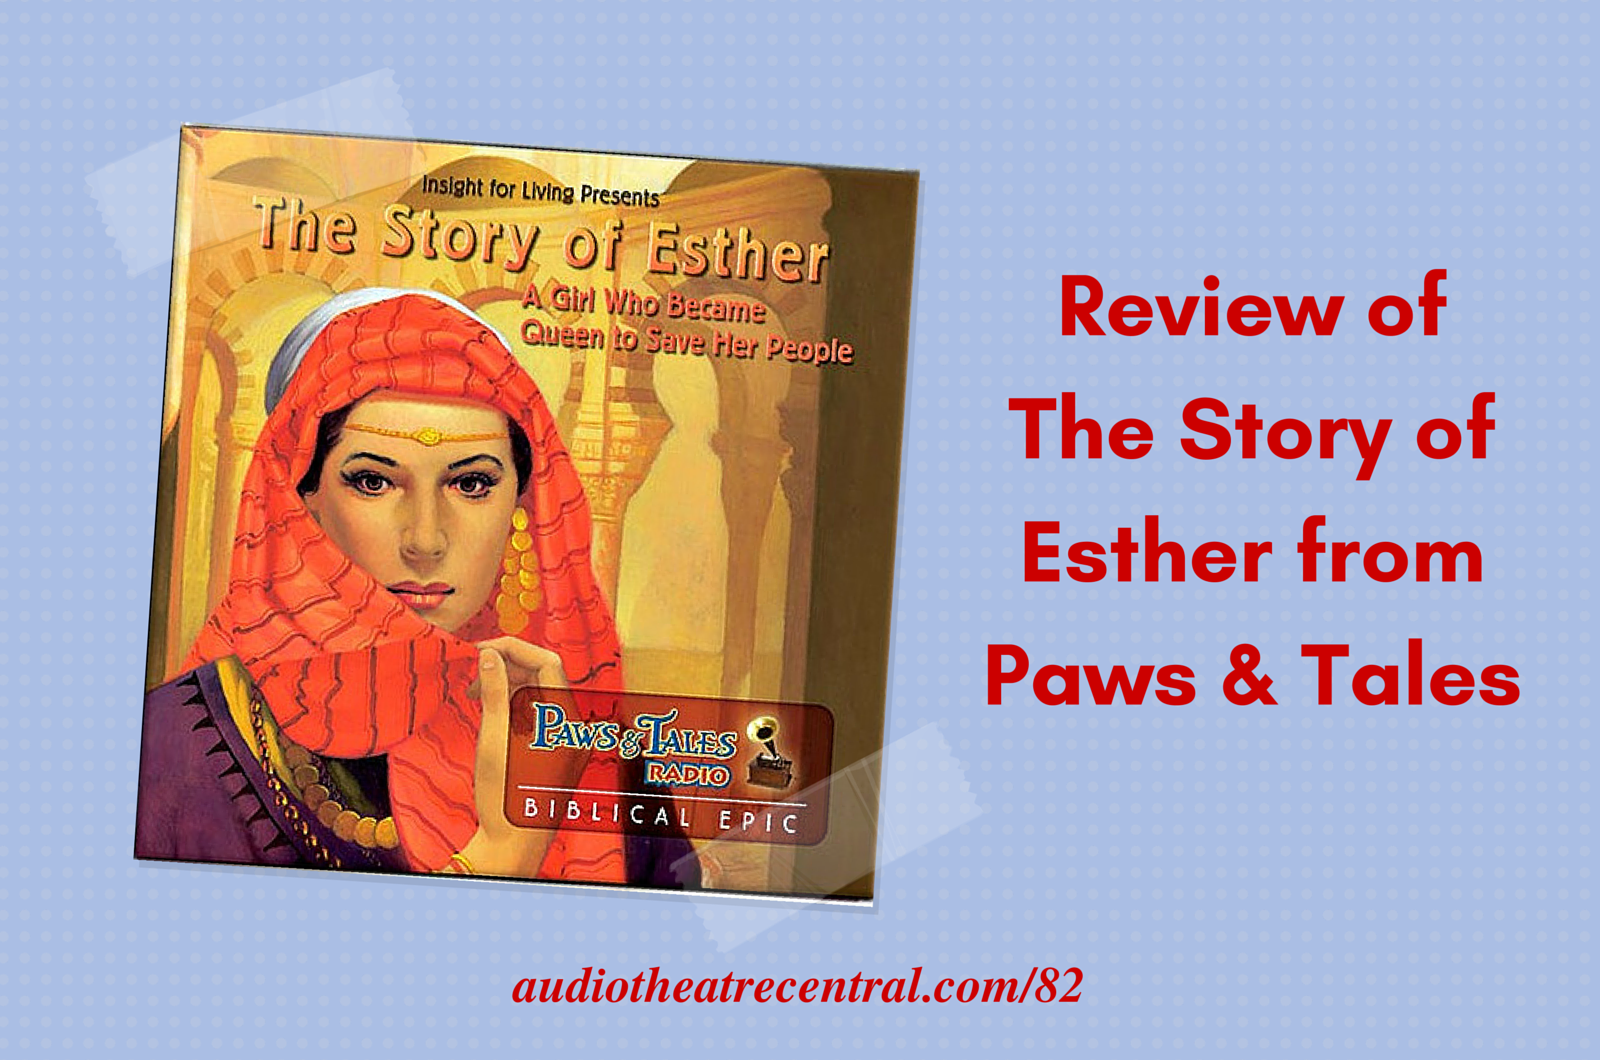 atc82 review of the story of esther from paws u0026 tales audio